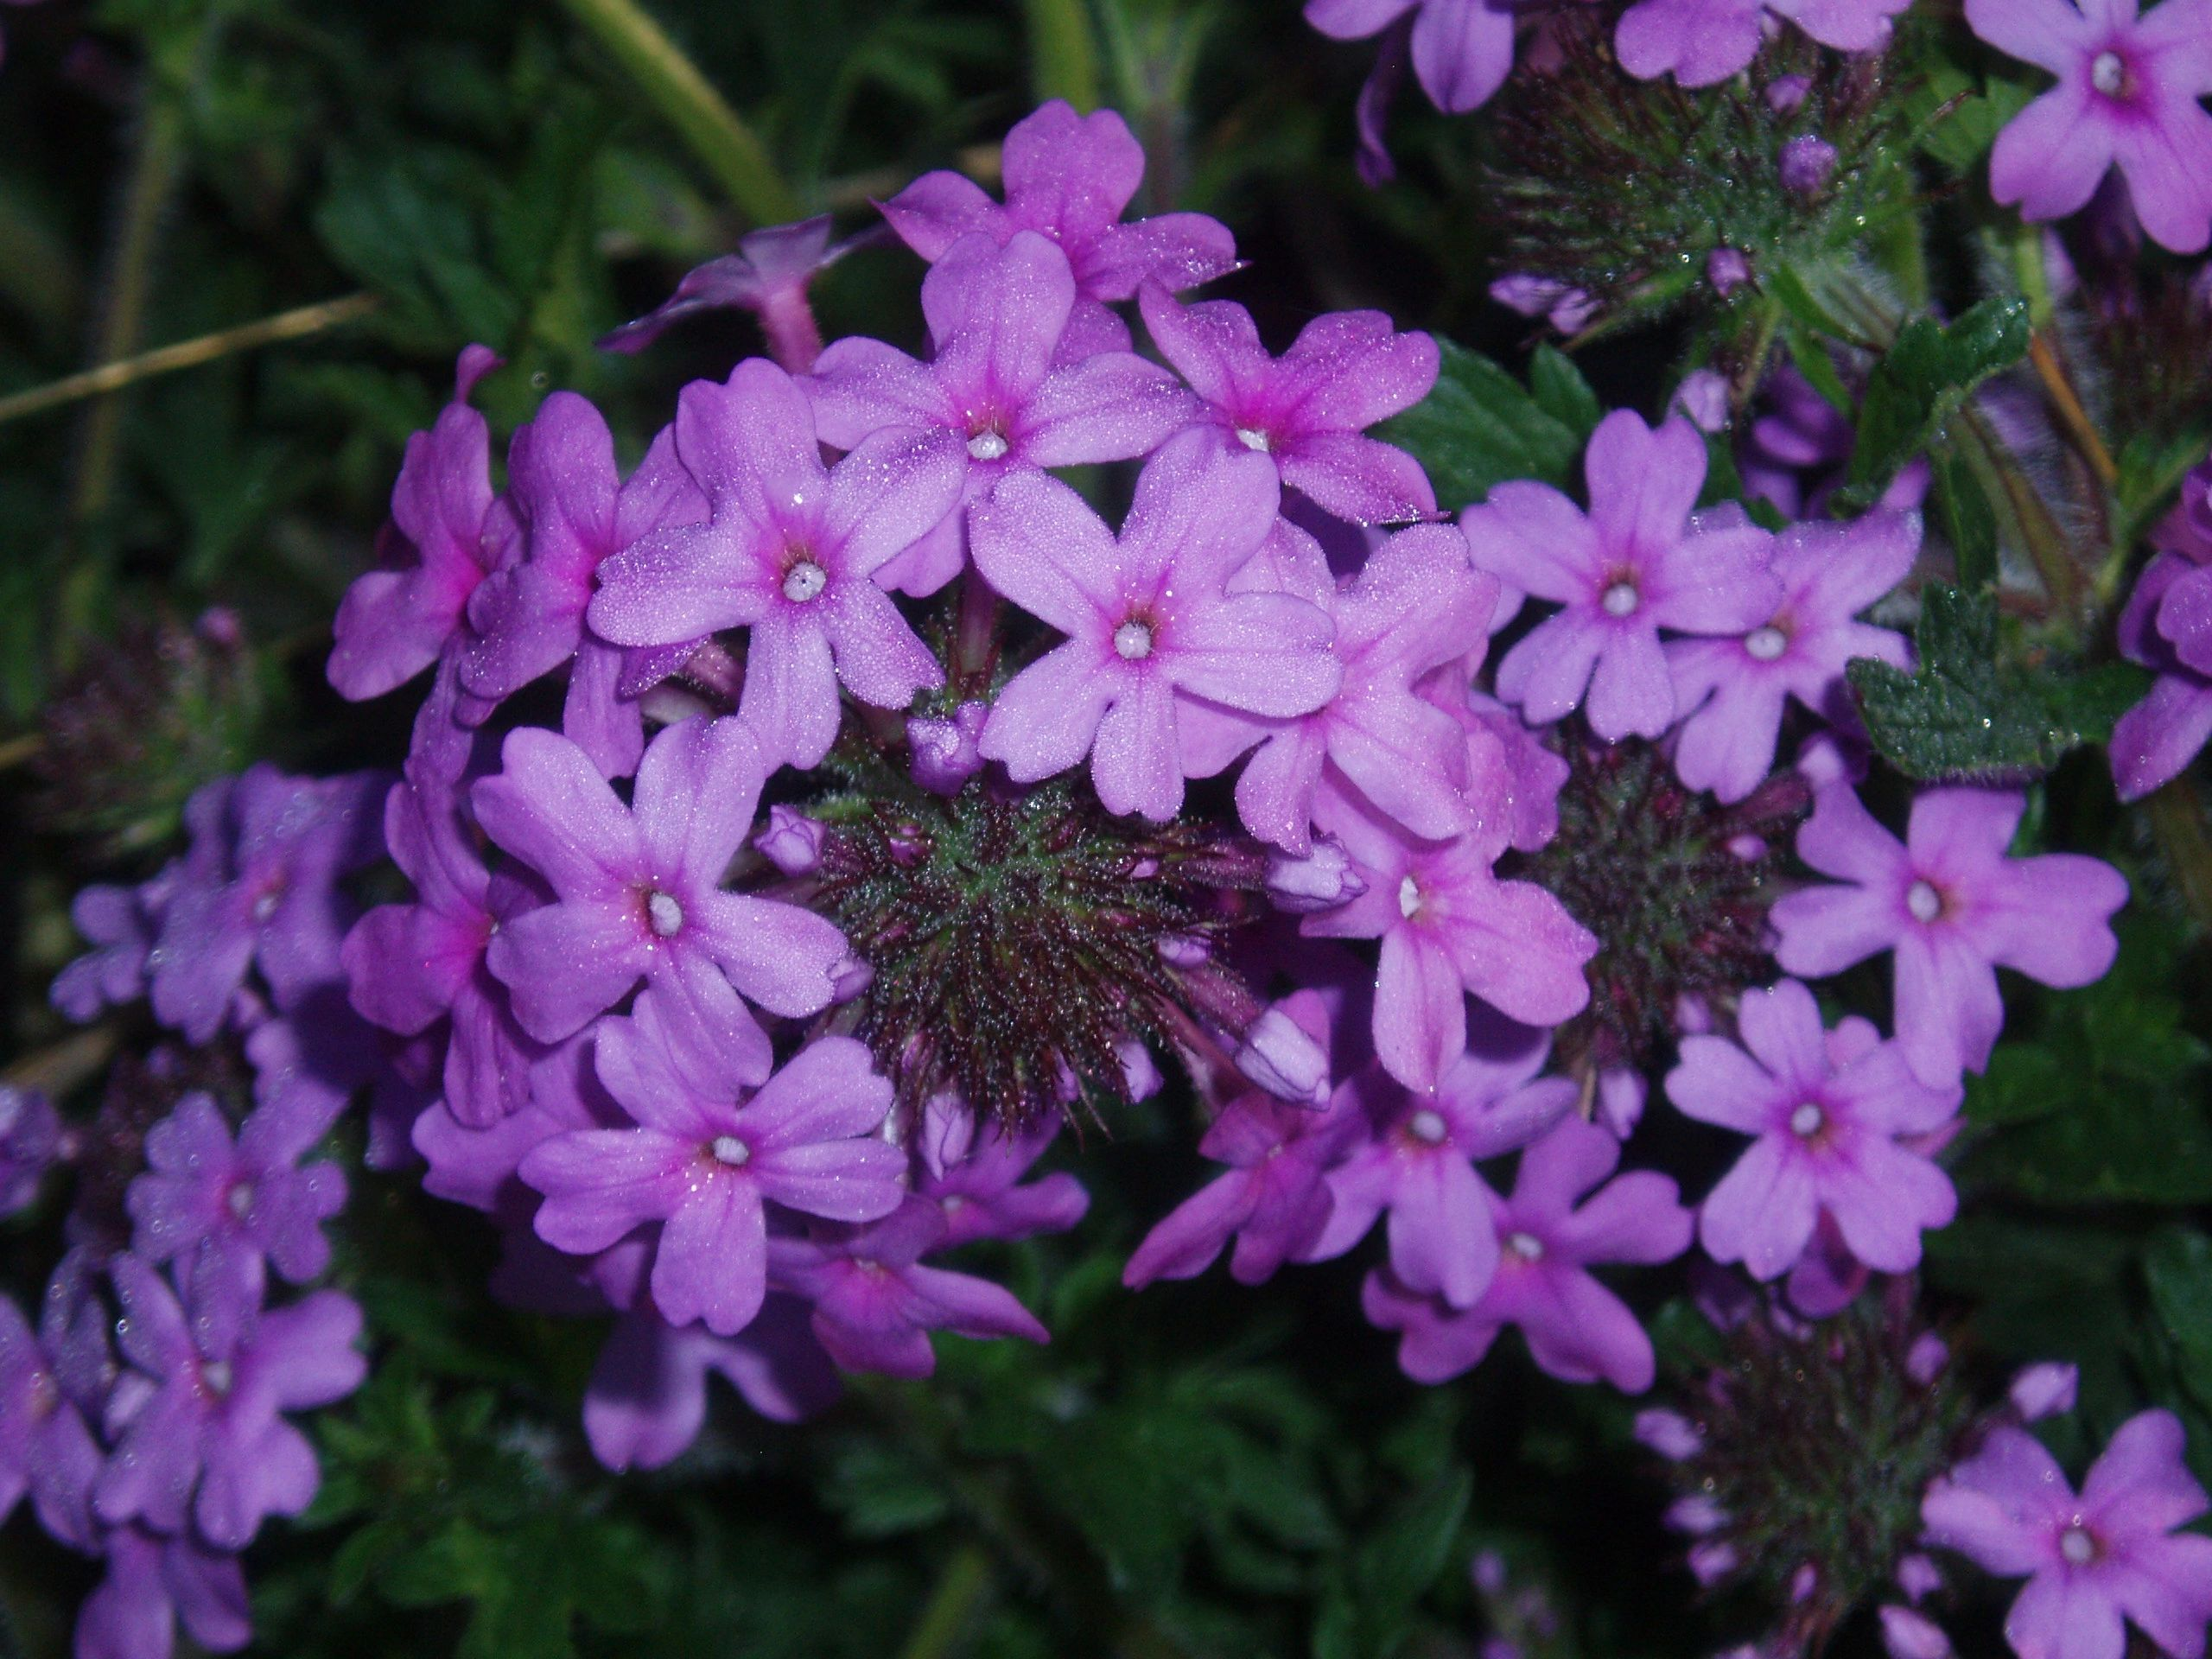 "{""blocks"":[{""key"":""1bhra"",""text"":"" Glandularia canaden (Verbena canadensis) Rose Vervain - potted plants  john@easywildflowers.com "",""type"":""unstyled"",""depth"":0,""inlineStyleRanges"":[],""entityRanges"":[],""data"":{}}],""entityMap"":{}}"